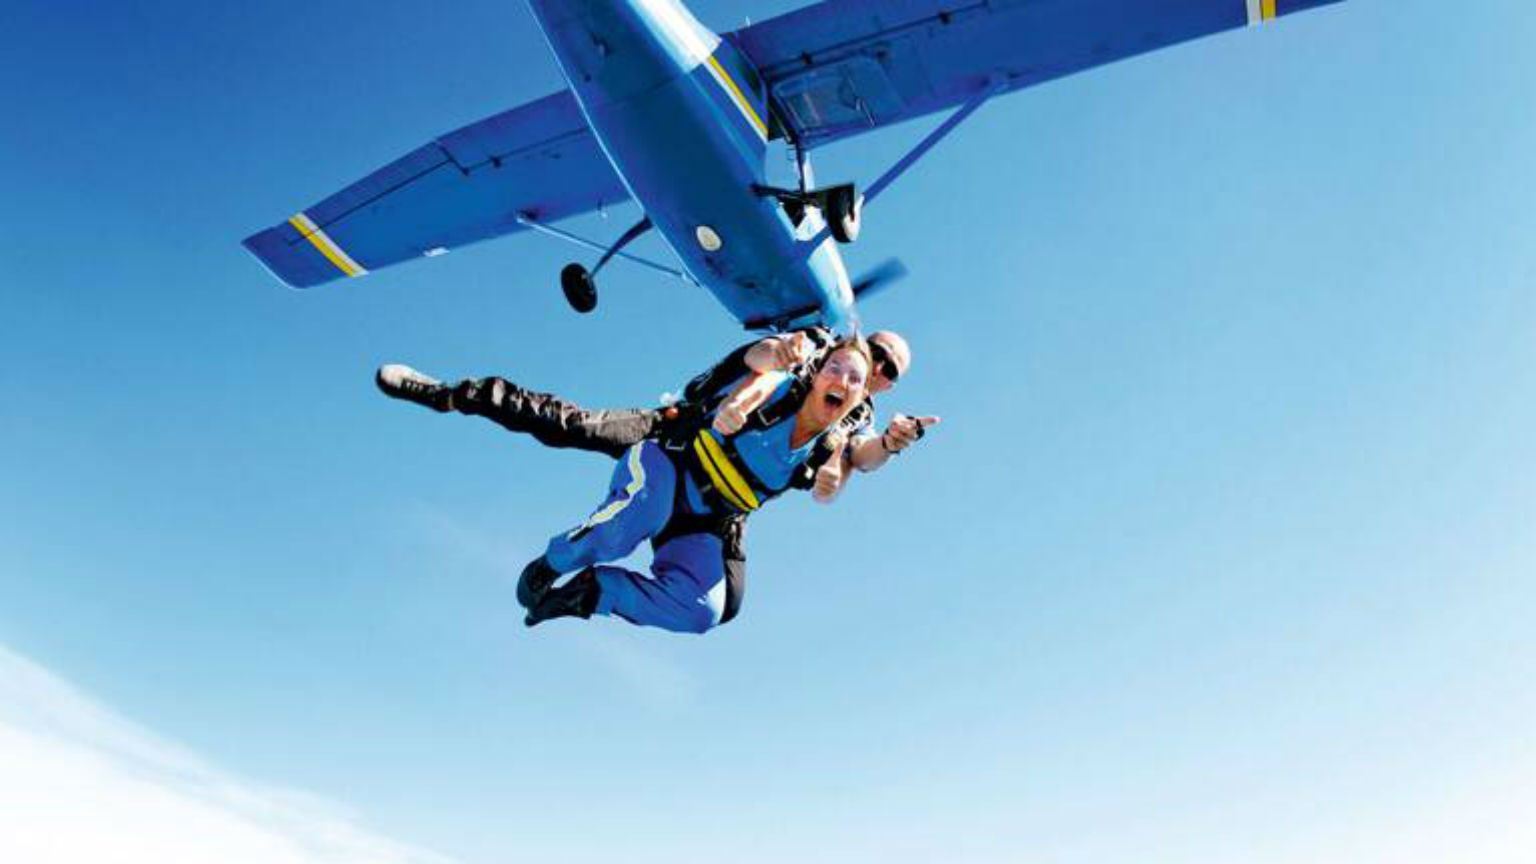 Skydiving in Melbourne: The best locations, prices and ...